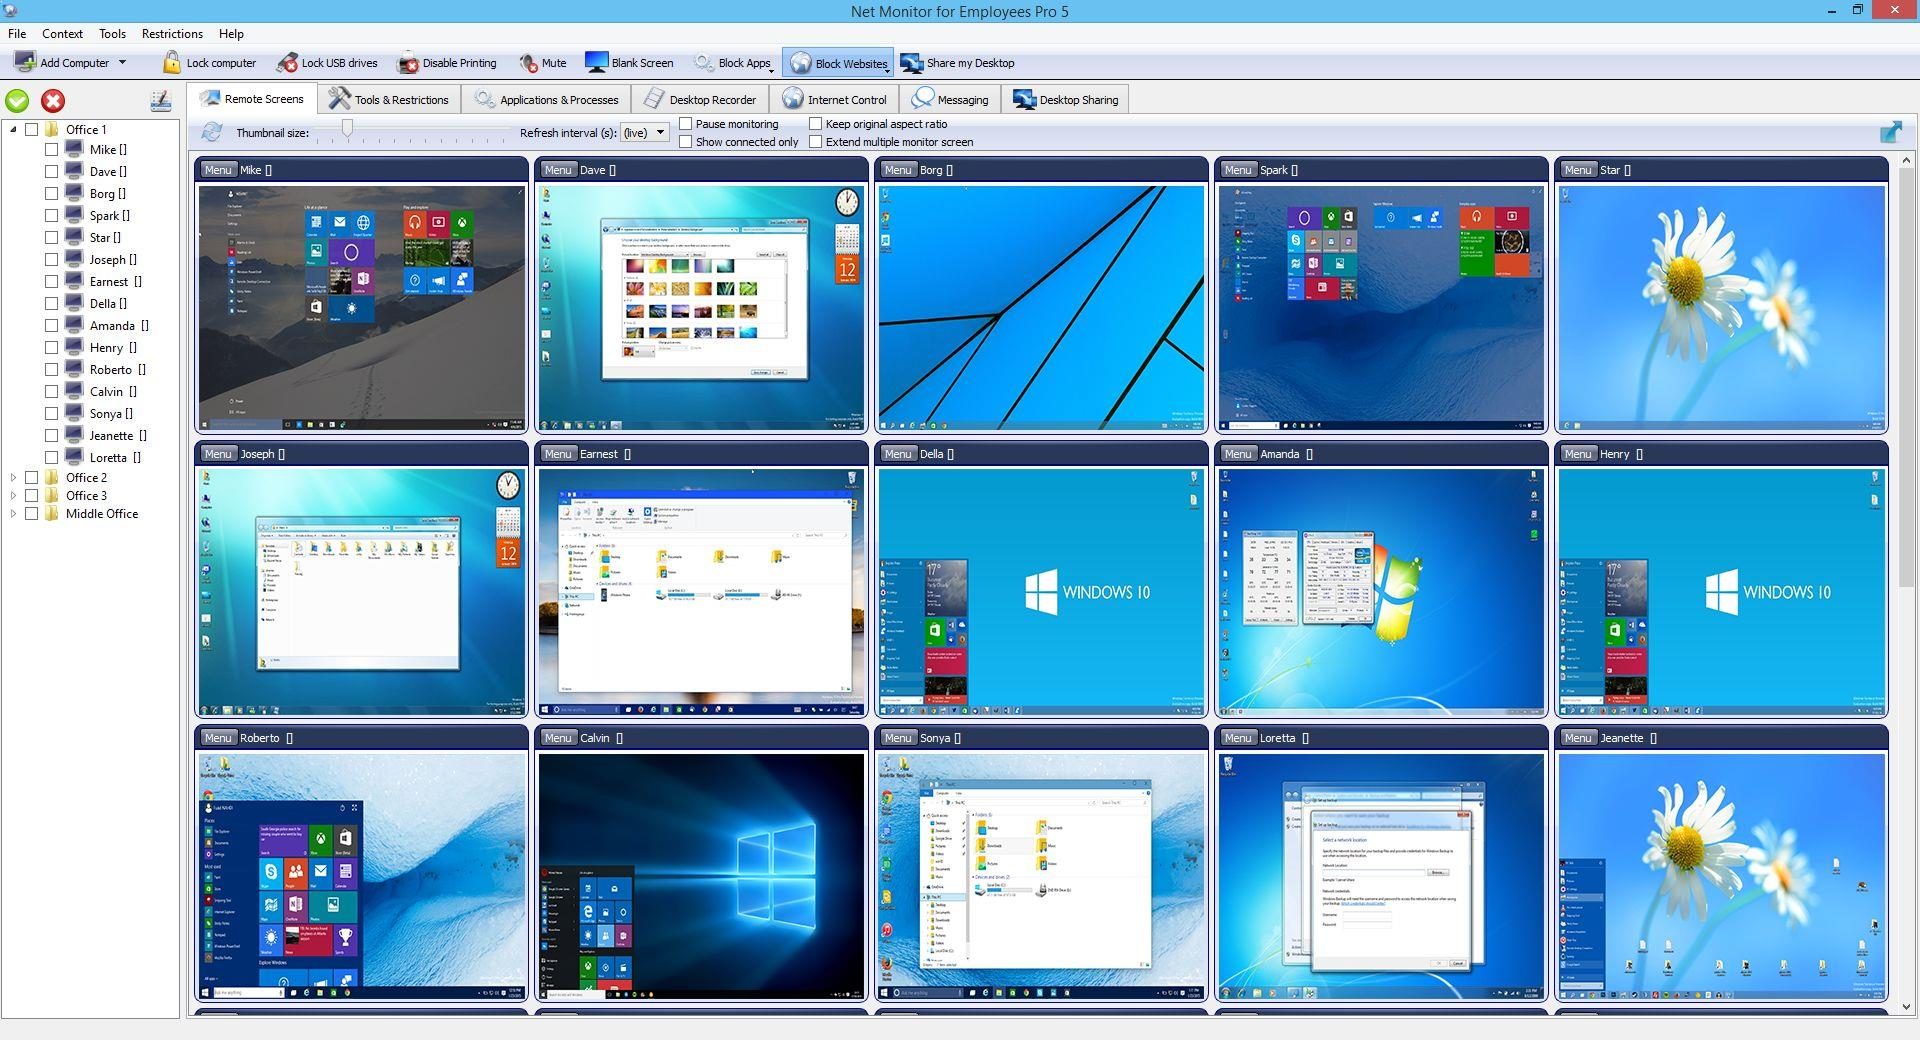 Screenshot af Net Monitor For Employees